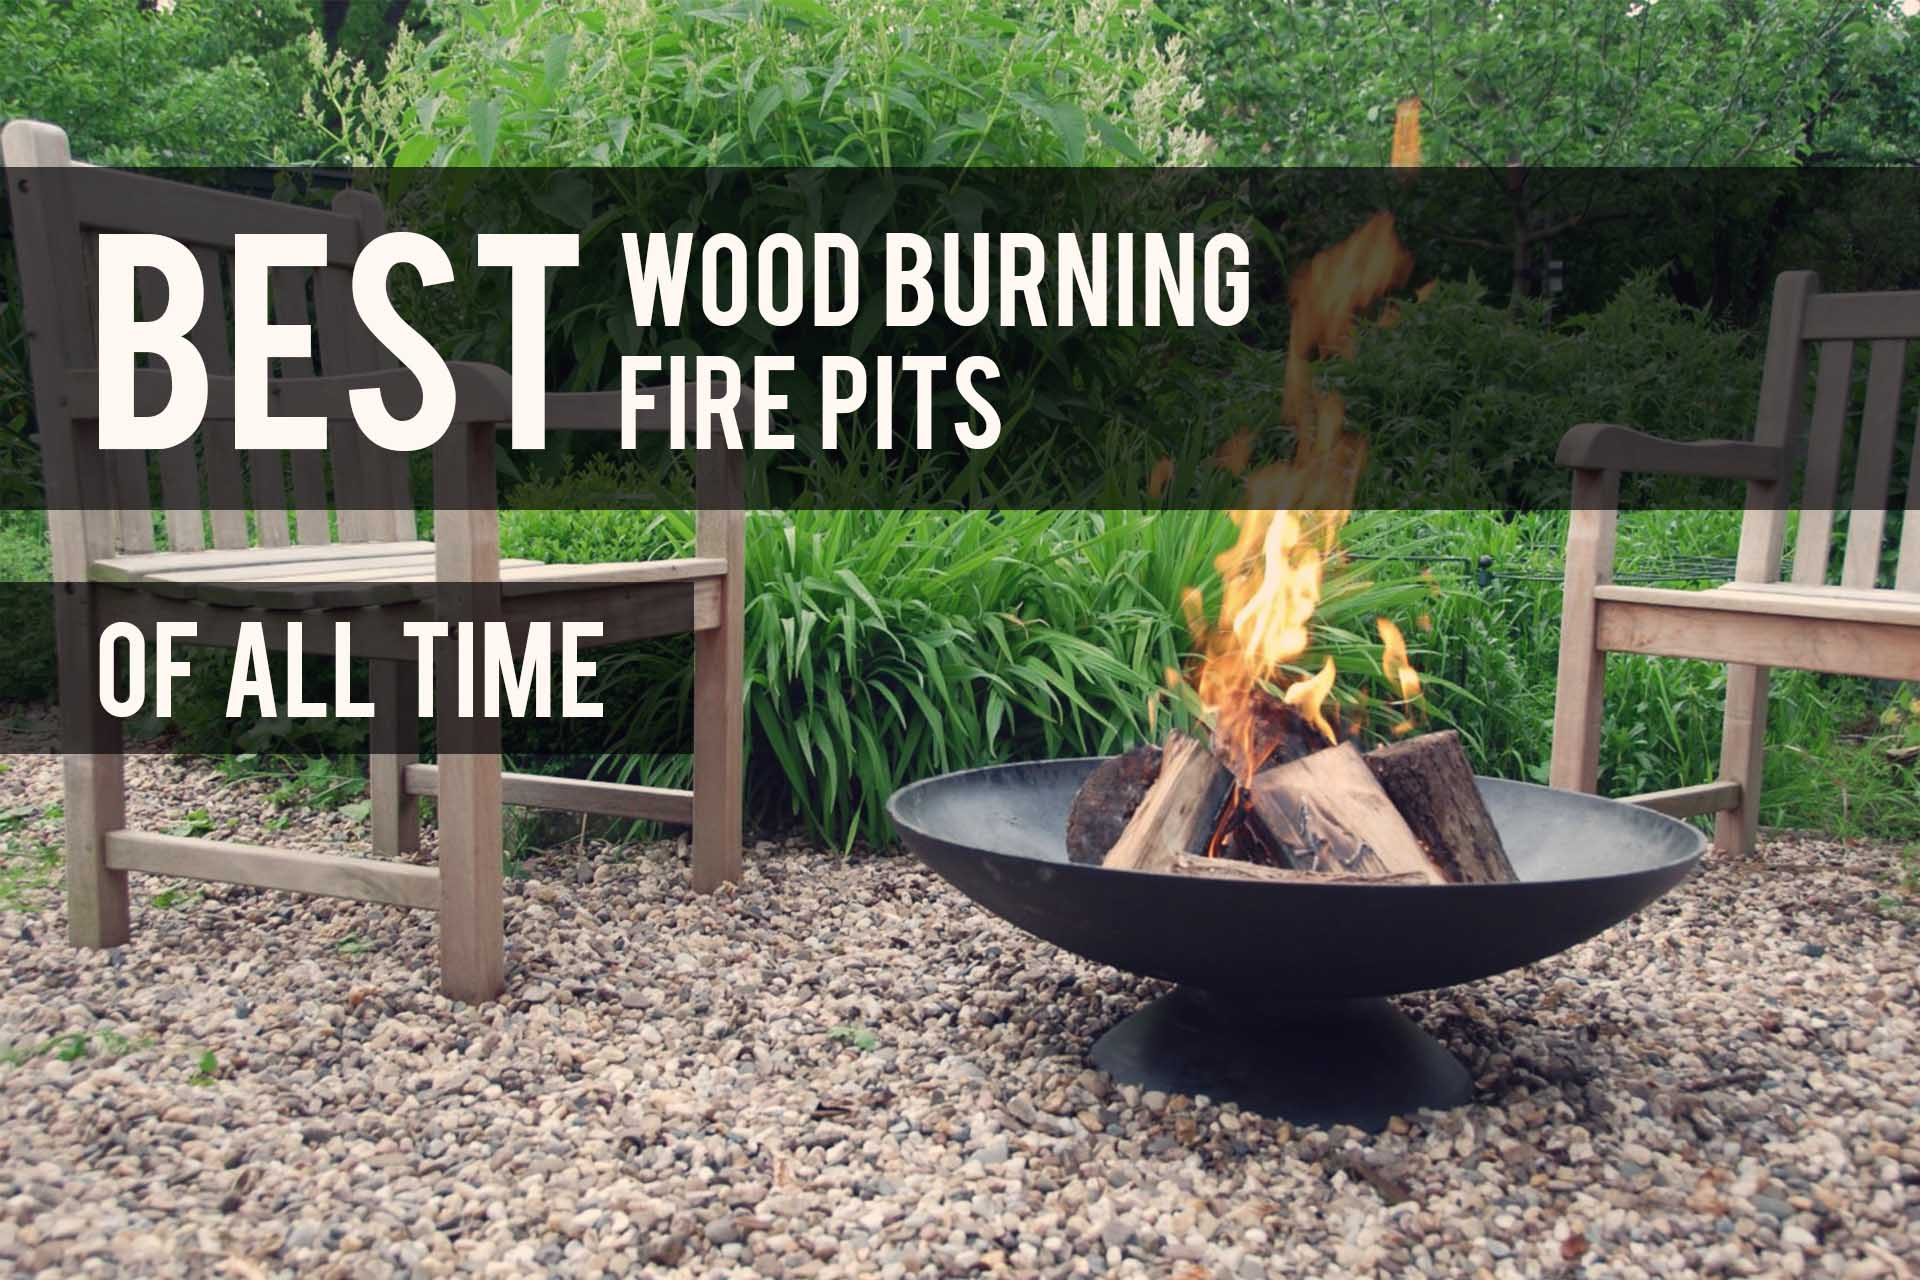 Best Wood Burning Fire Pits 2019 Reviews The Patio Pro